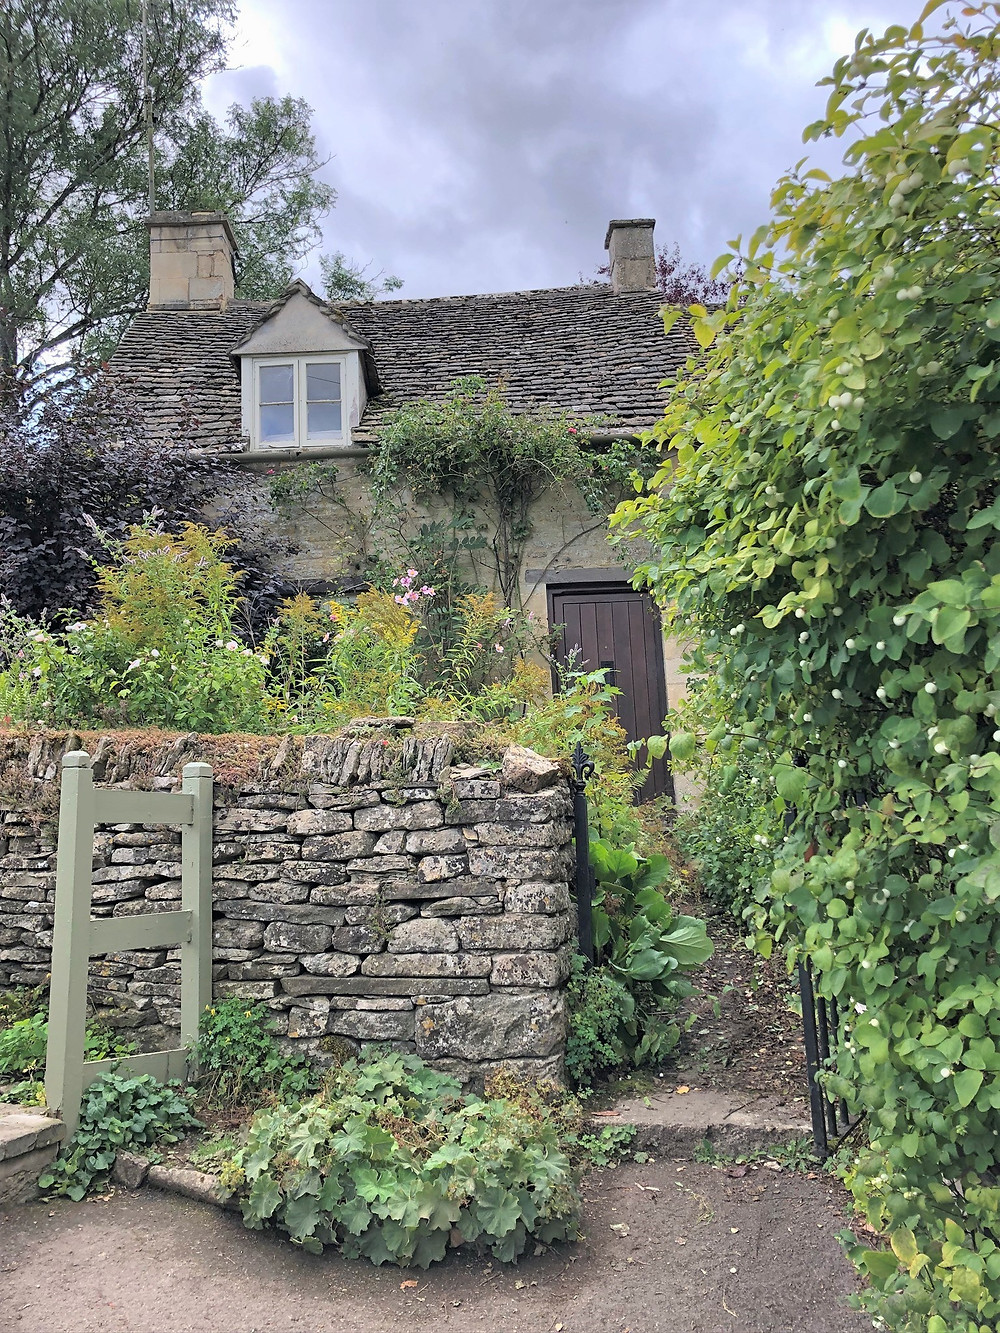 Arlington Row homes in Bibury of the Cotswolds. 17th century row of weavers' cottages in Bibury of the Cotswolds